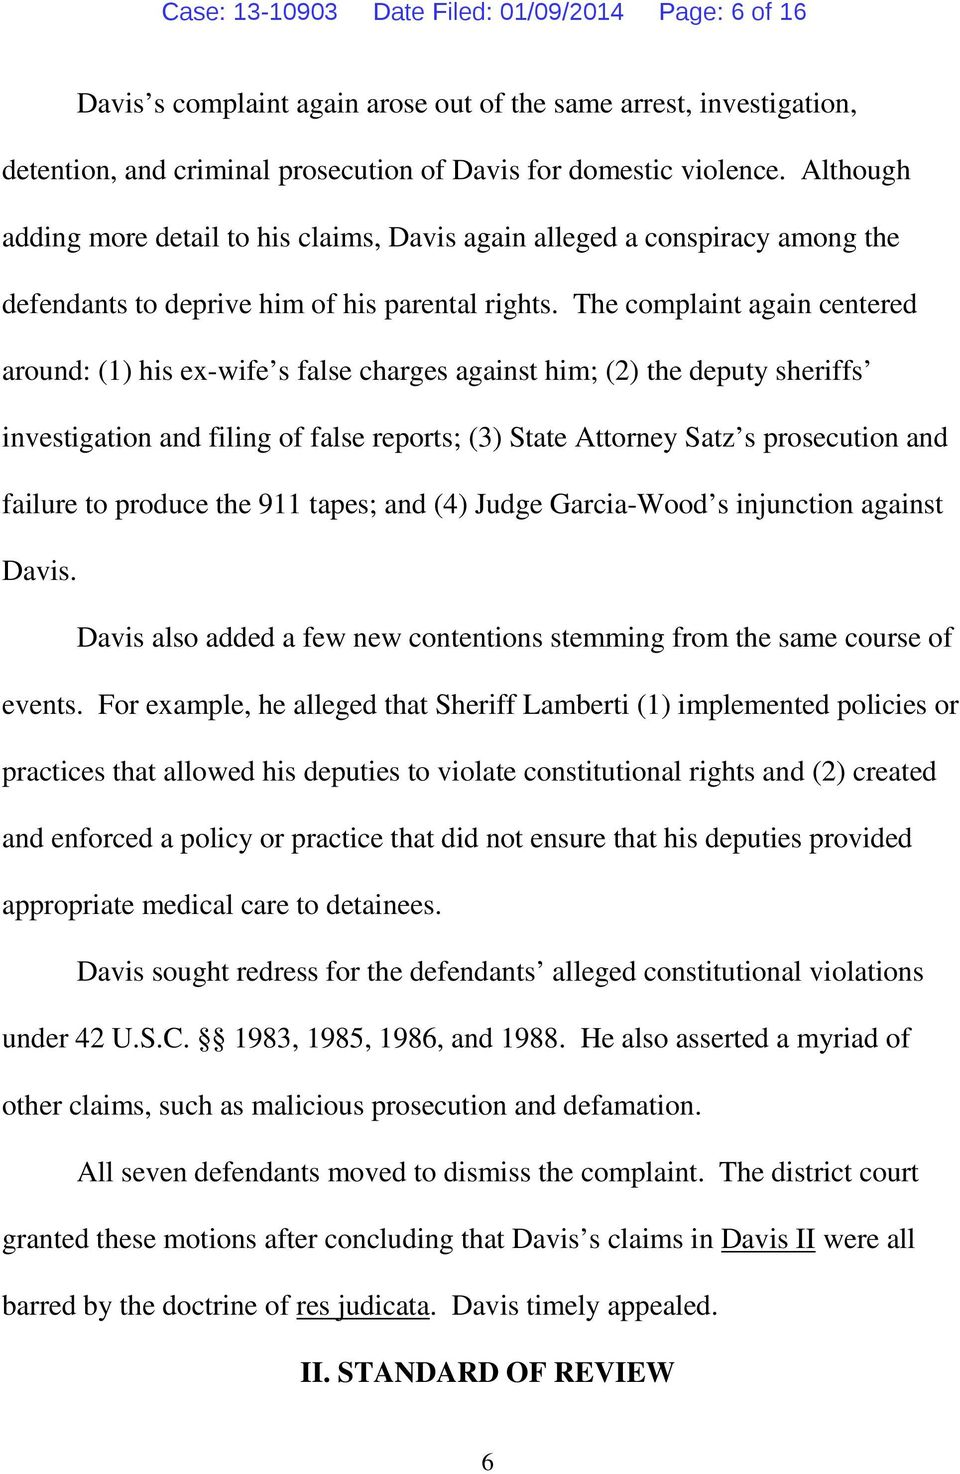 The complaint again centered around: (1) his ex-wife s false charges against him; (2) the deputy sheriffs investigation and filing of false reports; (3) State Attorney Satz s prosecution and failure